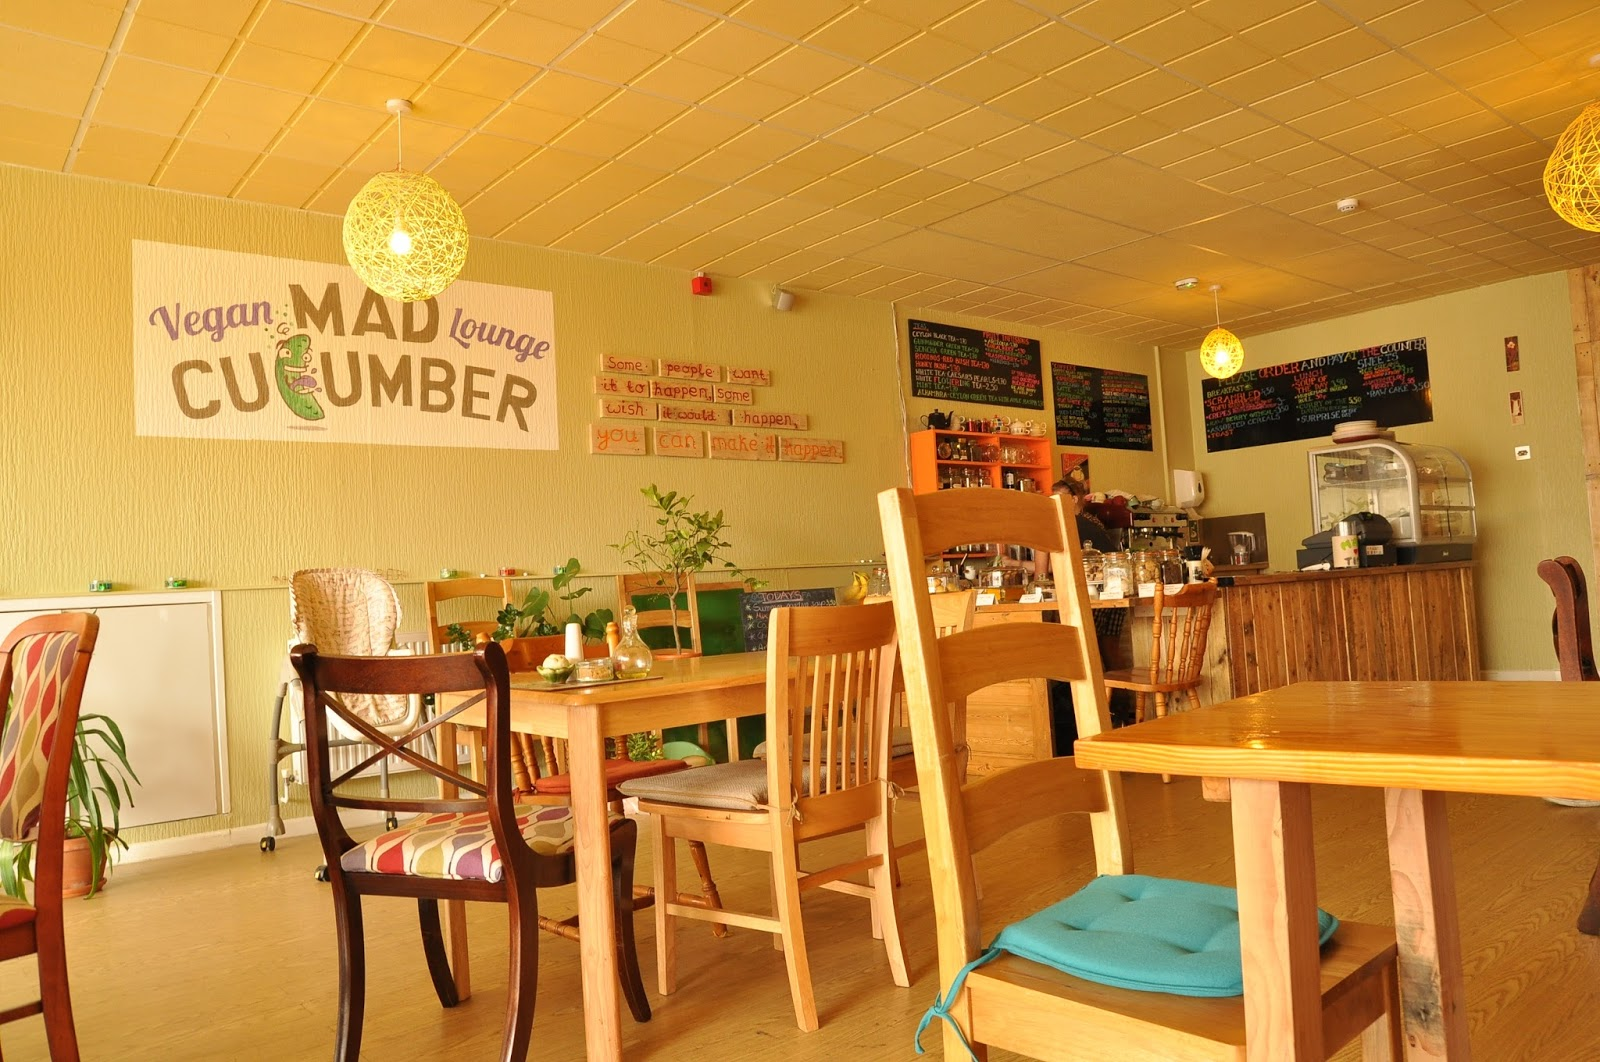 Mad cucumber bournemouth s vegan restaurant my virgin